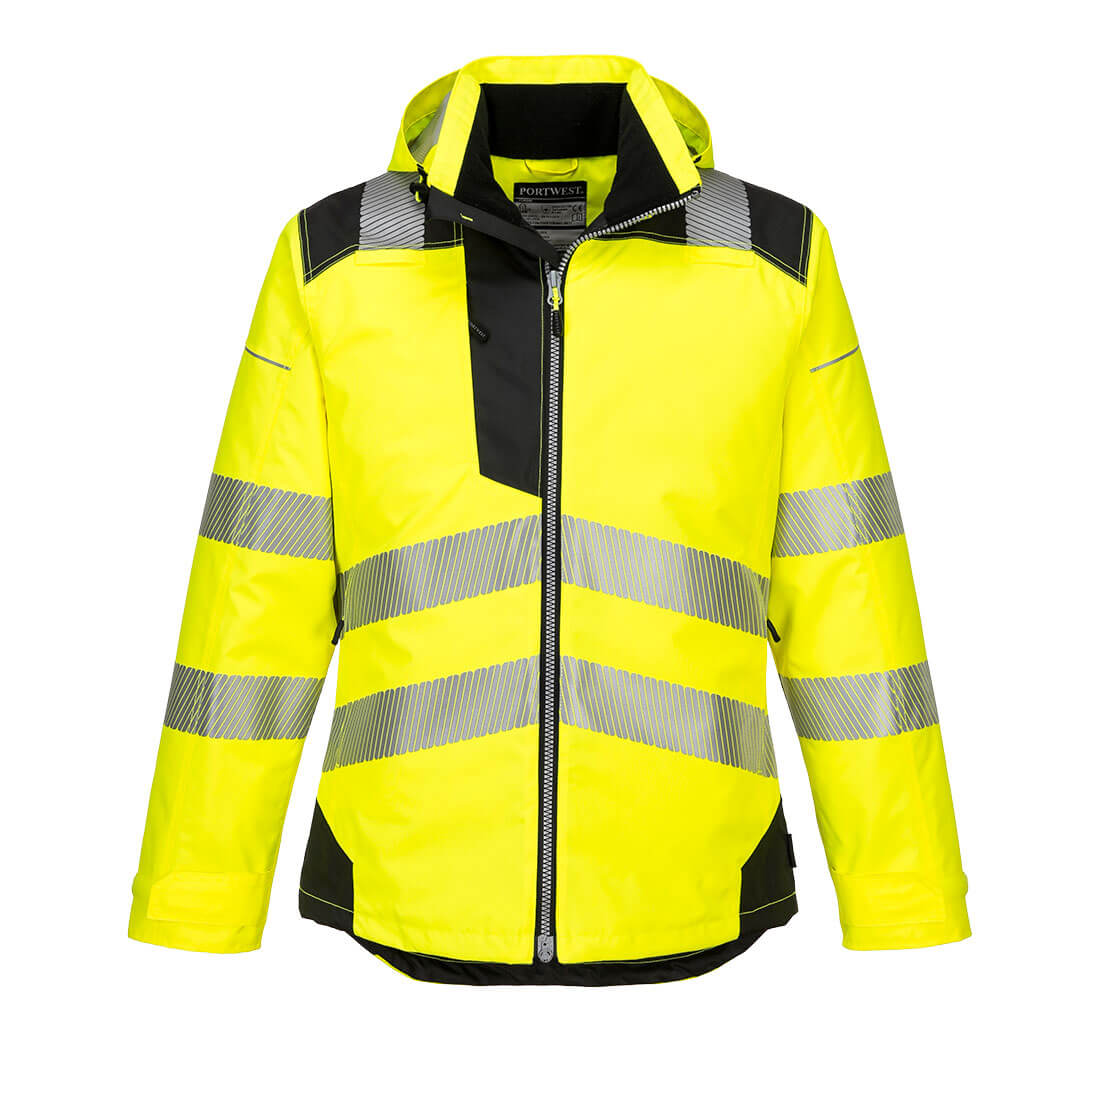 PW3 Hi-Vis Winter Jacket Yellow/Black XXL